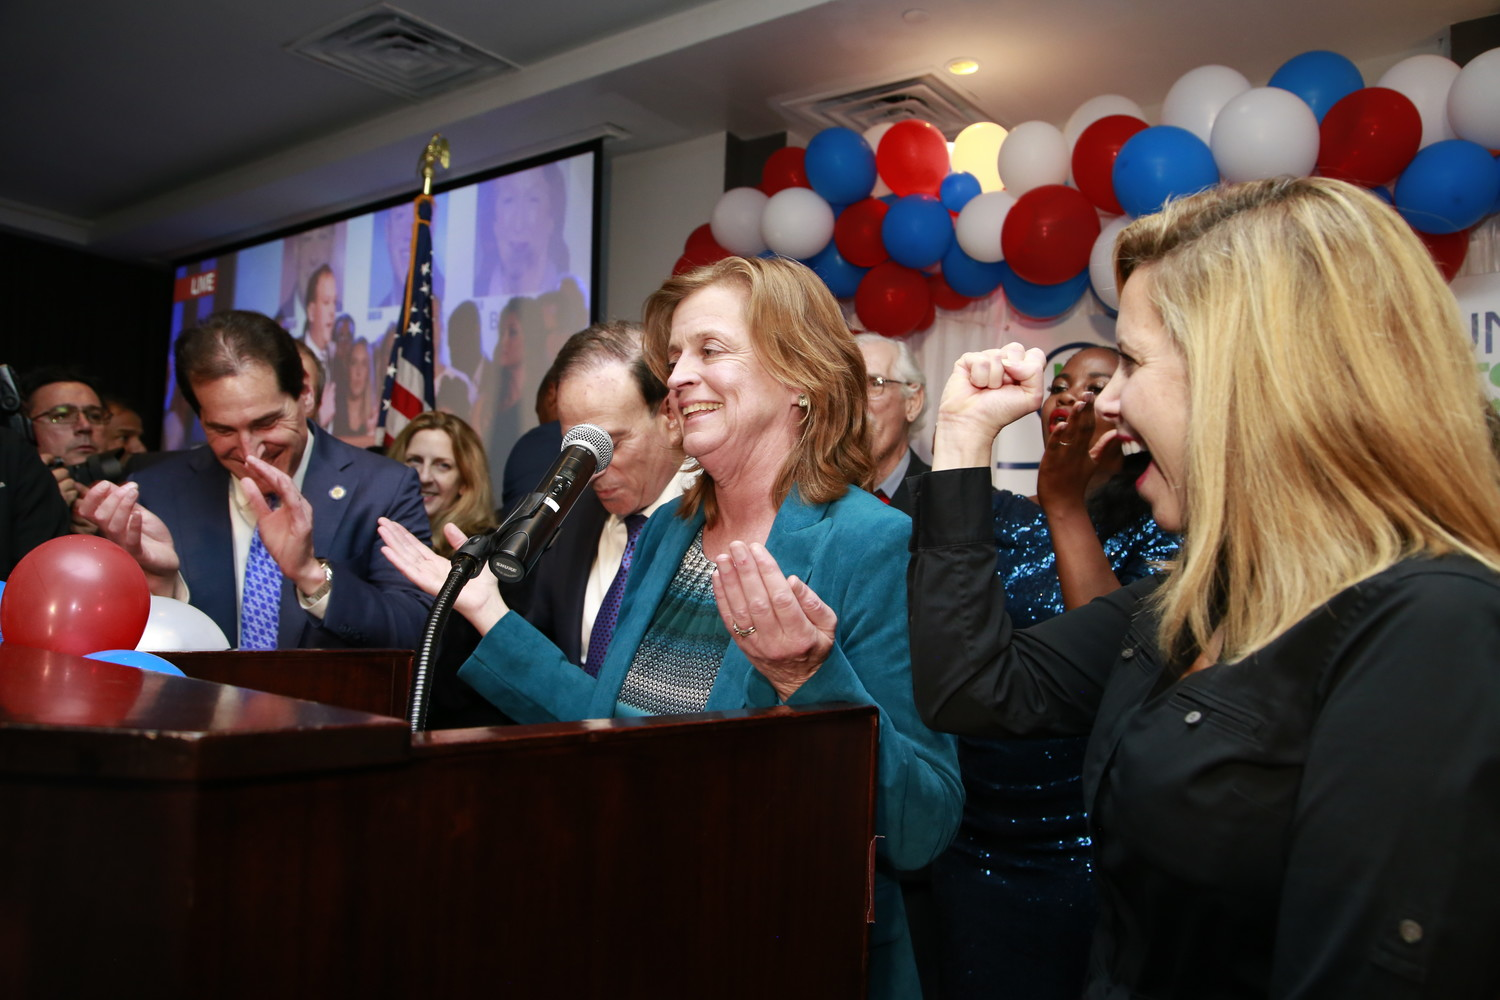 Democrat Judy Griffin unseated Brian Curran in the 21st Assembly District in Tuesday's election.